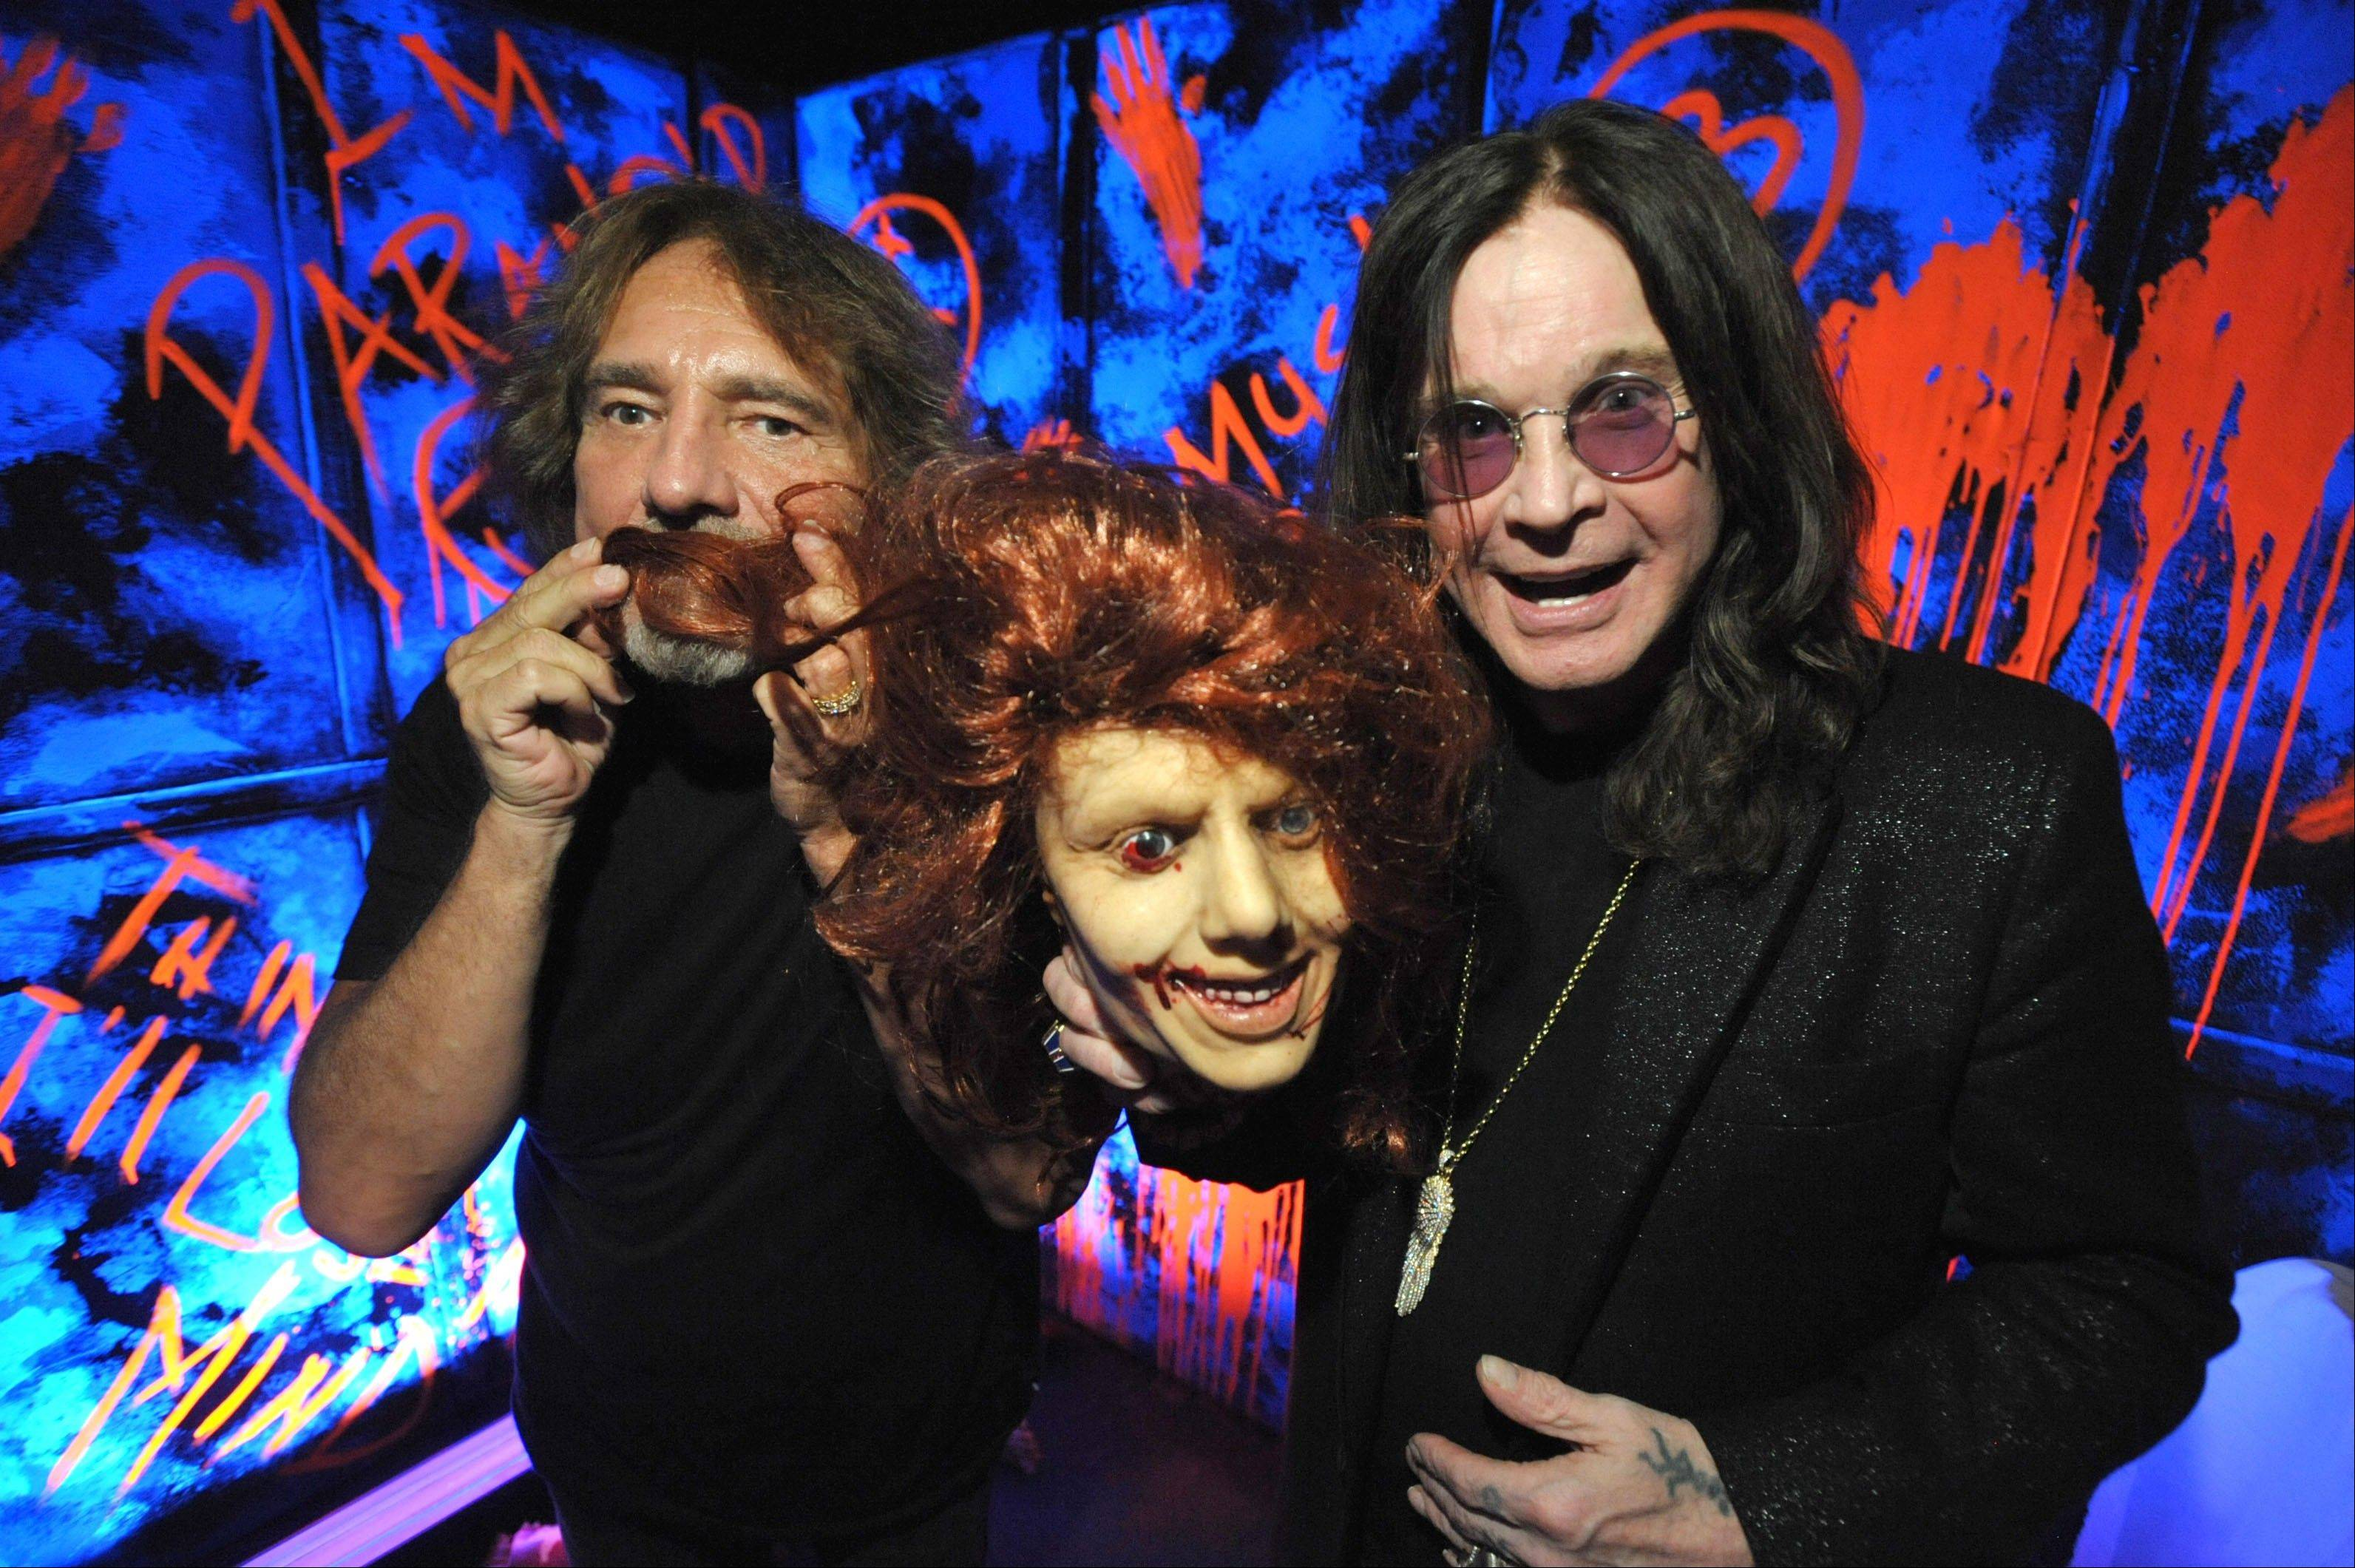 Geezer Butler, left, and Ozzy Osbourne pose with props at the �Black Sabbath: 13 3D� maze at Universal Studios Halloween Horror Nights in Universal City, Calif. Besides �13� from Sabbath, there�s a �scare zone� populated by actors dressed as the nasty Chucky doll from the direct-to-DVD sequel �Curse of Chucky� and a new maze incorporating supernatural elements from the �Insidious� films.